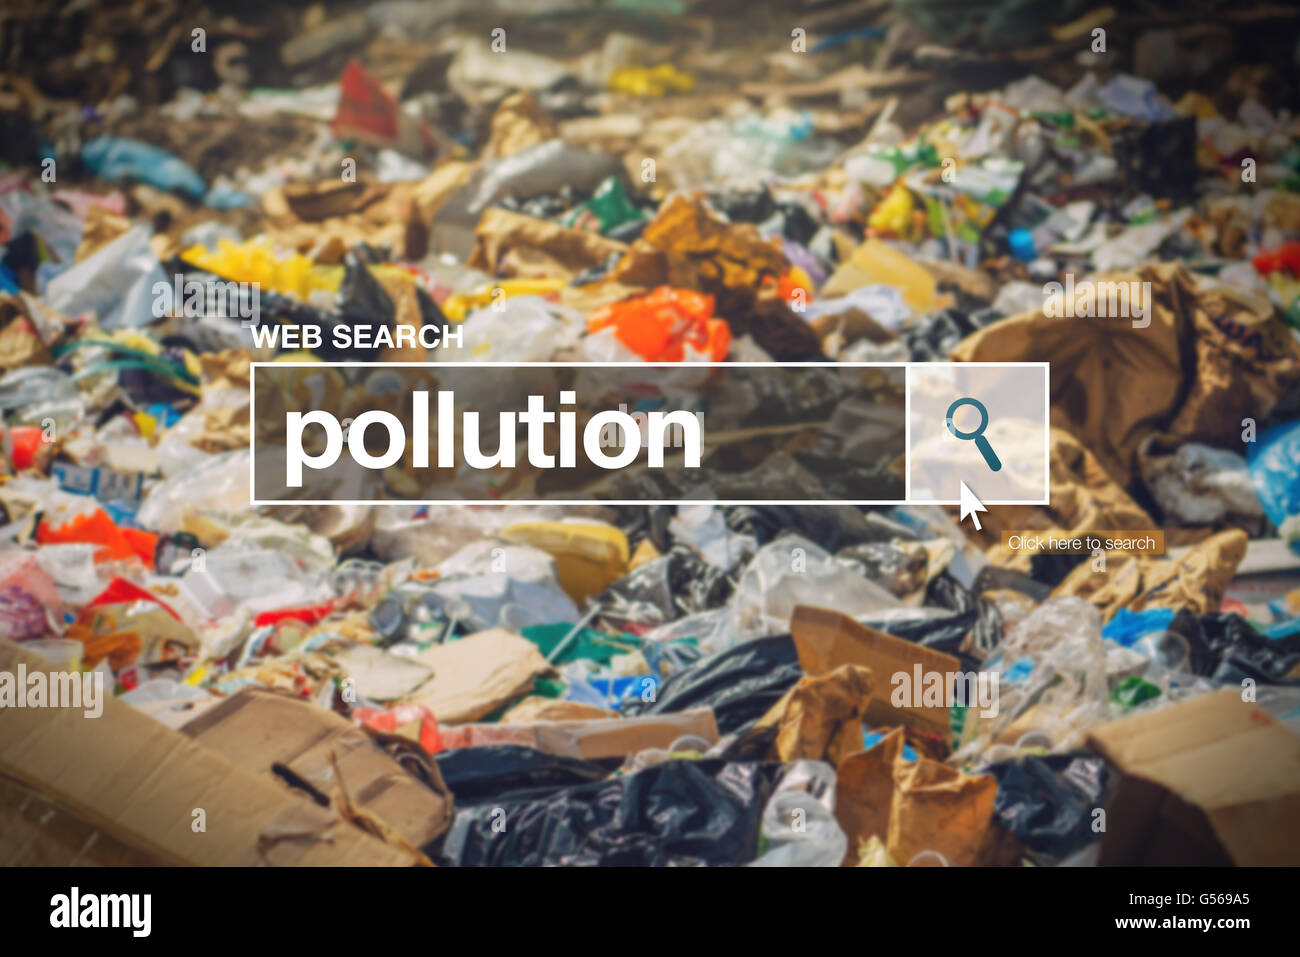 Pollution in internet browser search box with landfill detail in background. - Stock Image